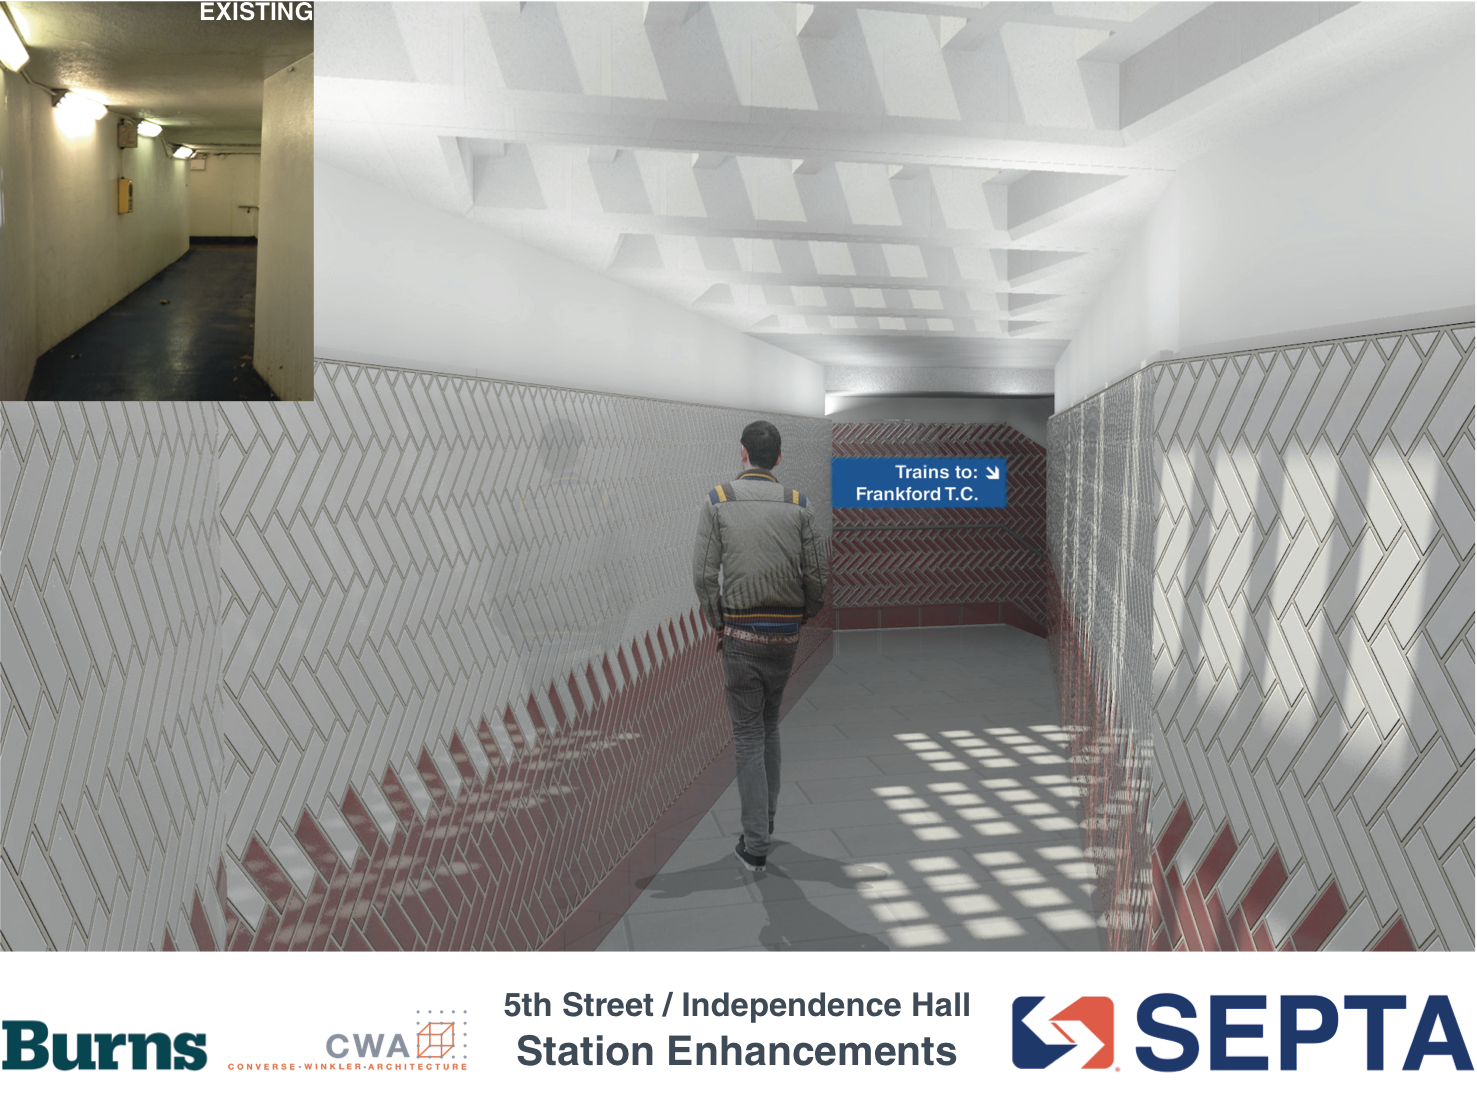 5th Street / Independence Hall: Passageway rendering | courtesy of SEPTA